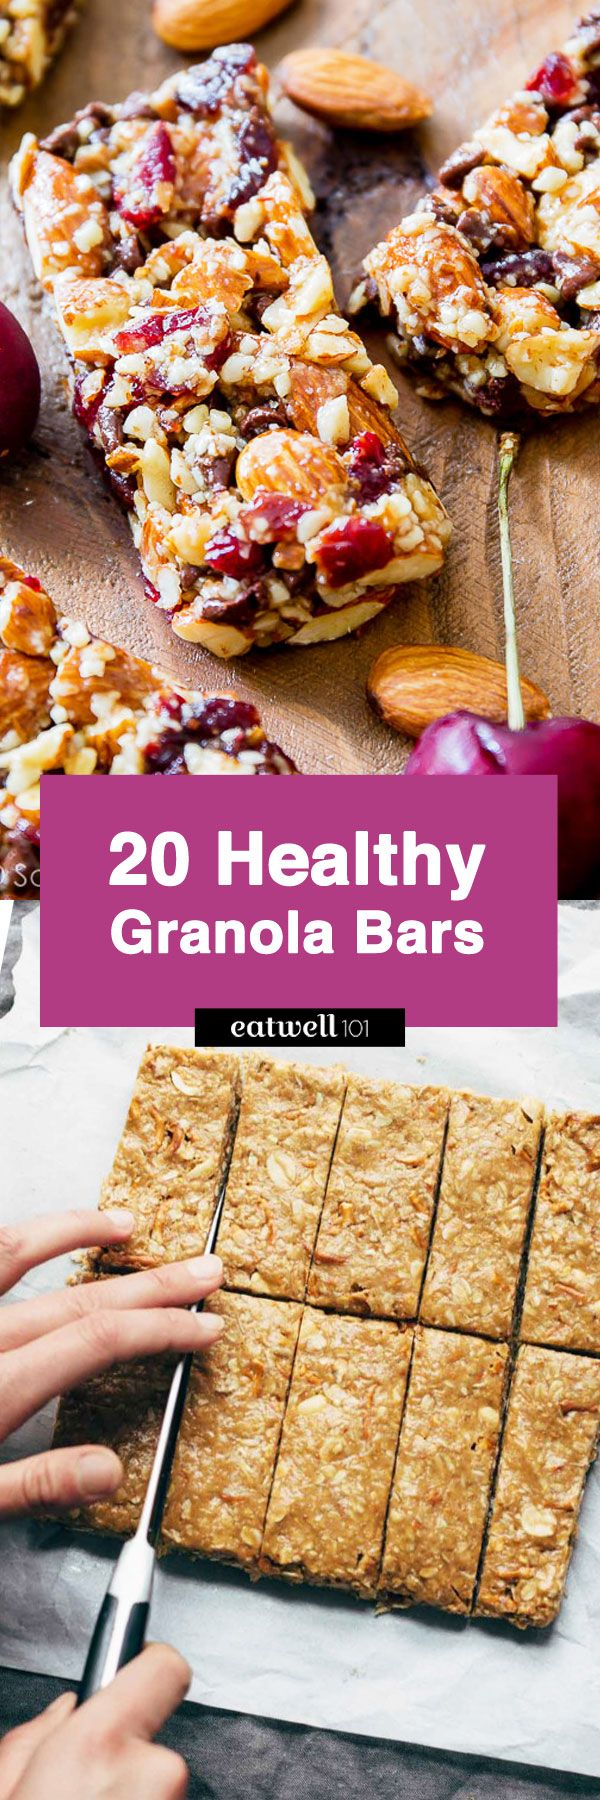 If you want satisfy your snack cravings, these delicious granola bars areyour go-to nutritioncompanion to fuel your day!